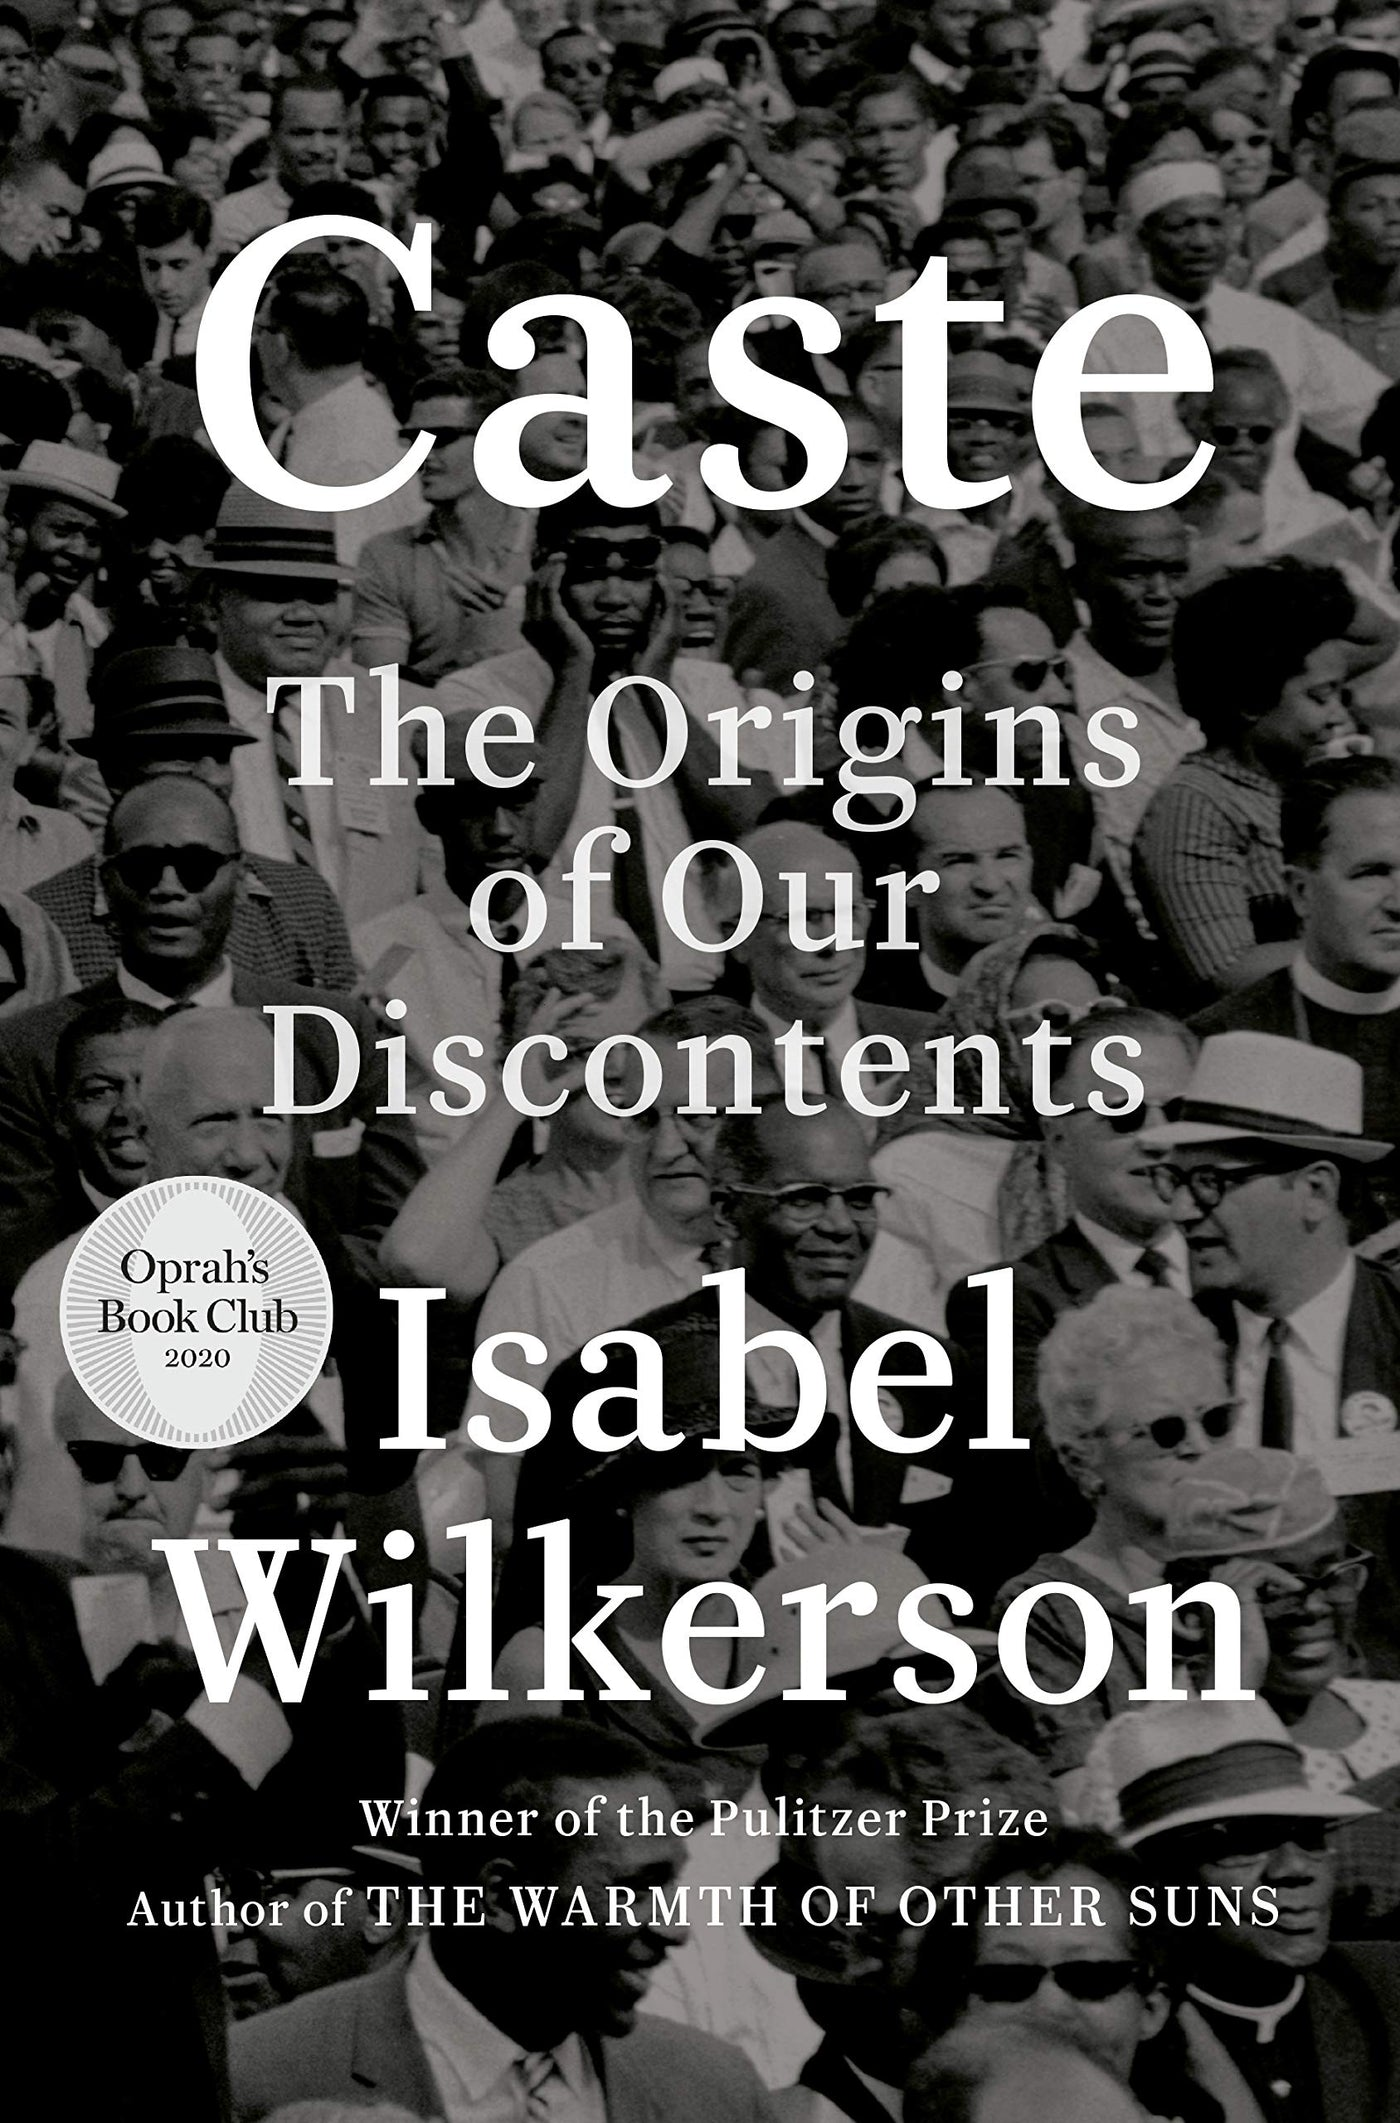 Caste: The Origins of Our Discontents by Isabel Wilkerson